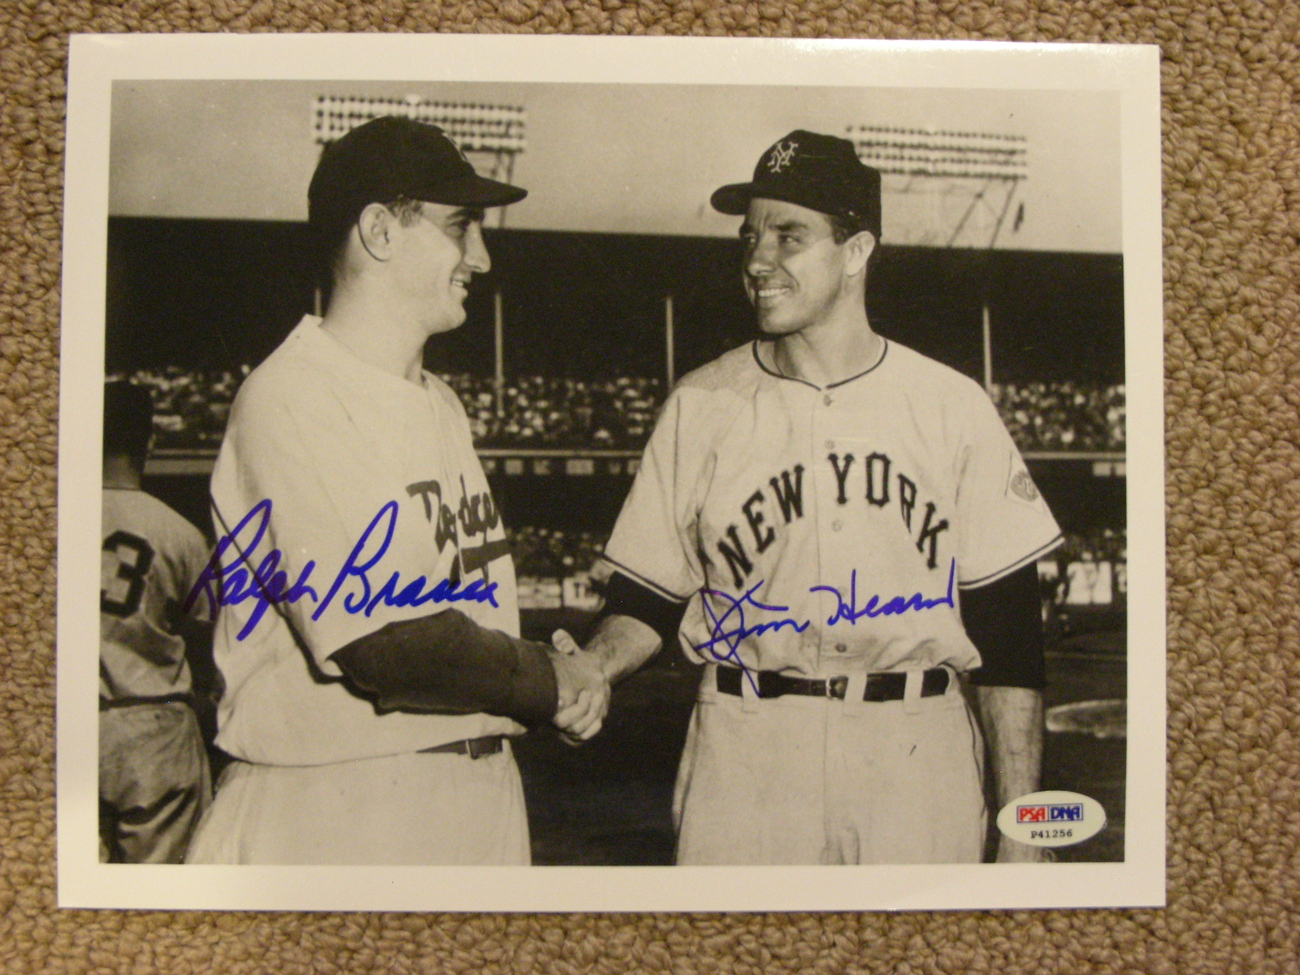 Primary image for RALPH BRANCA & JIM HEARN DODGER/GIANTS A/S PITCHERS SIGNED AUTO 8X10 PSA/DNA